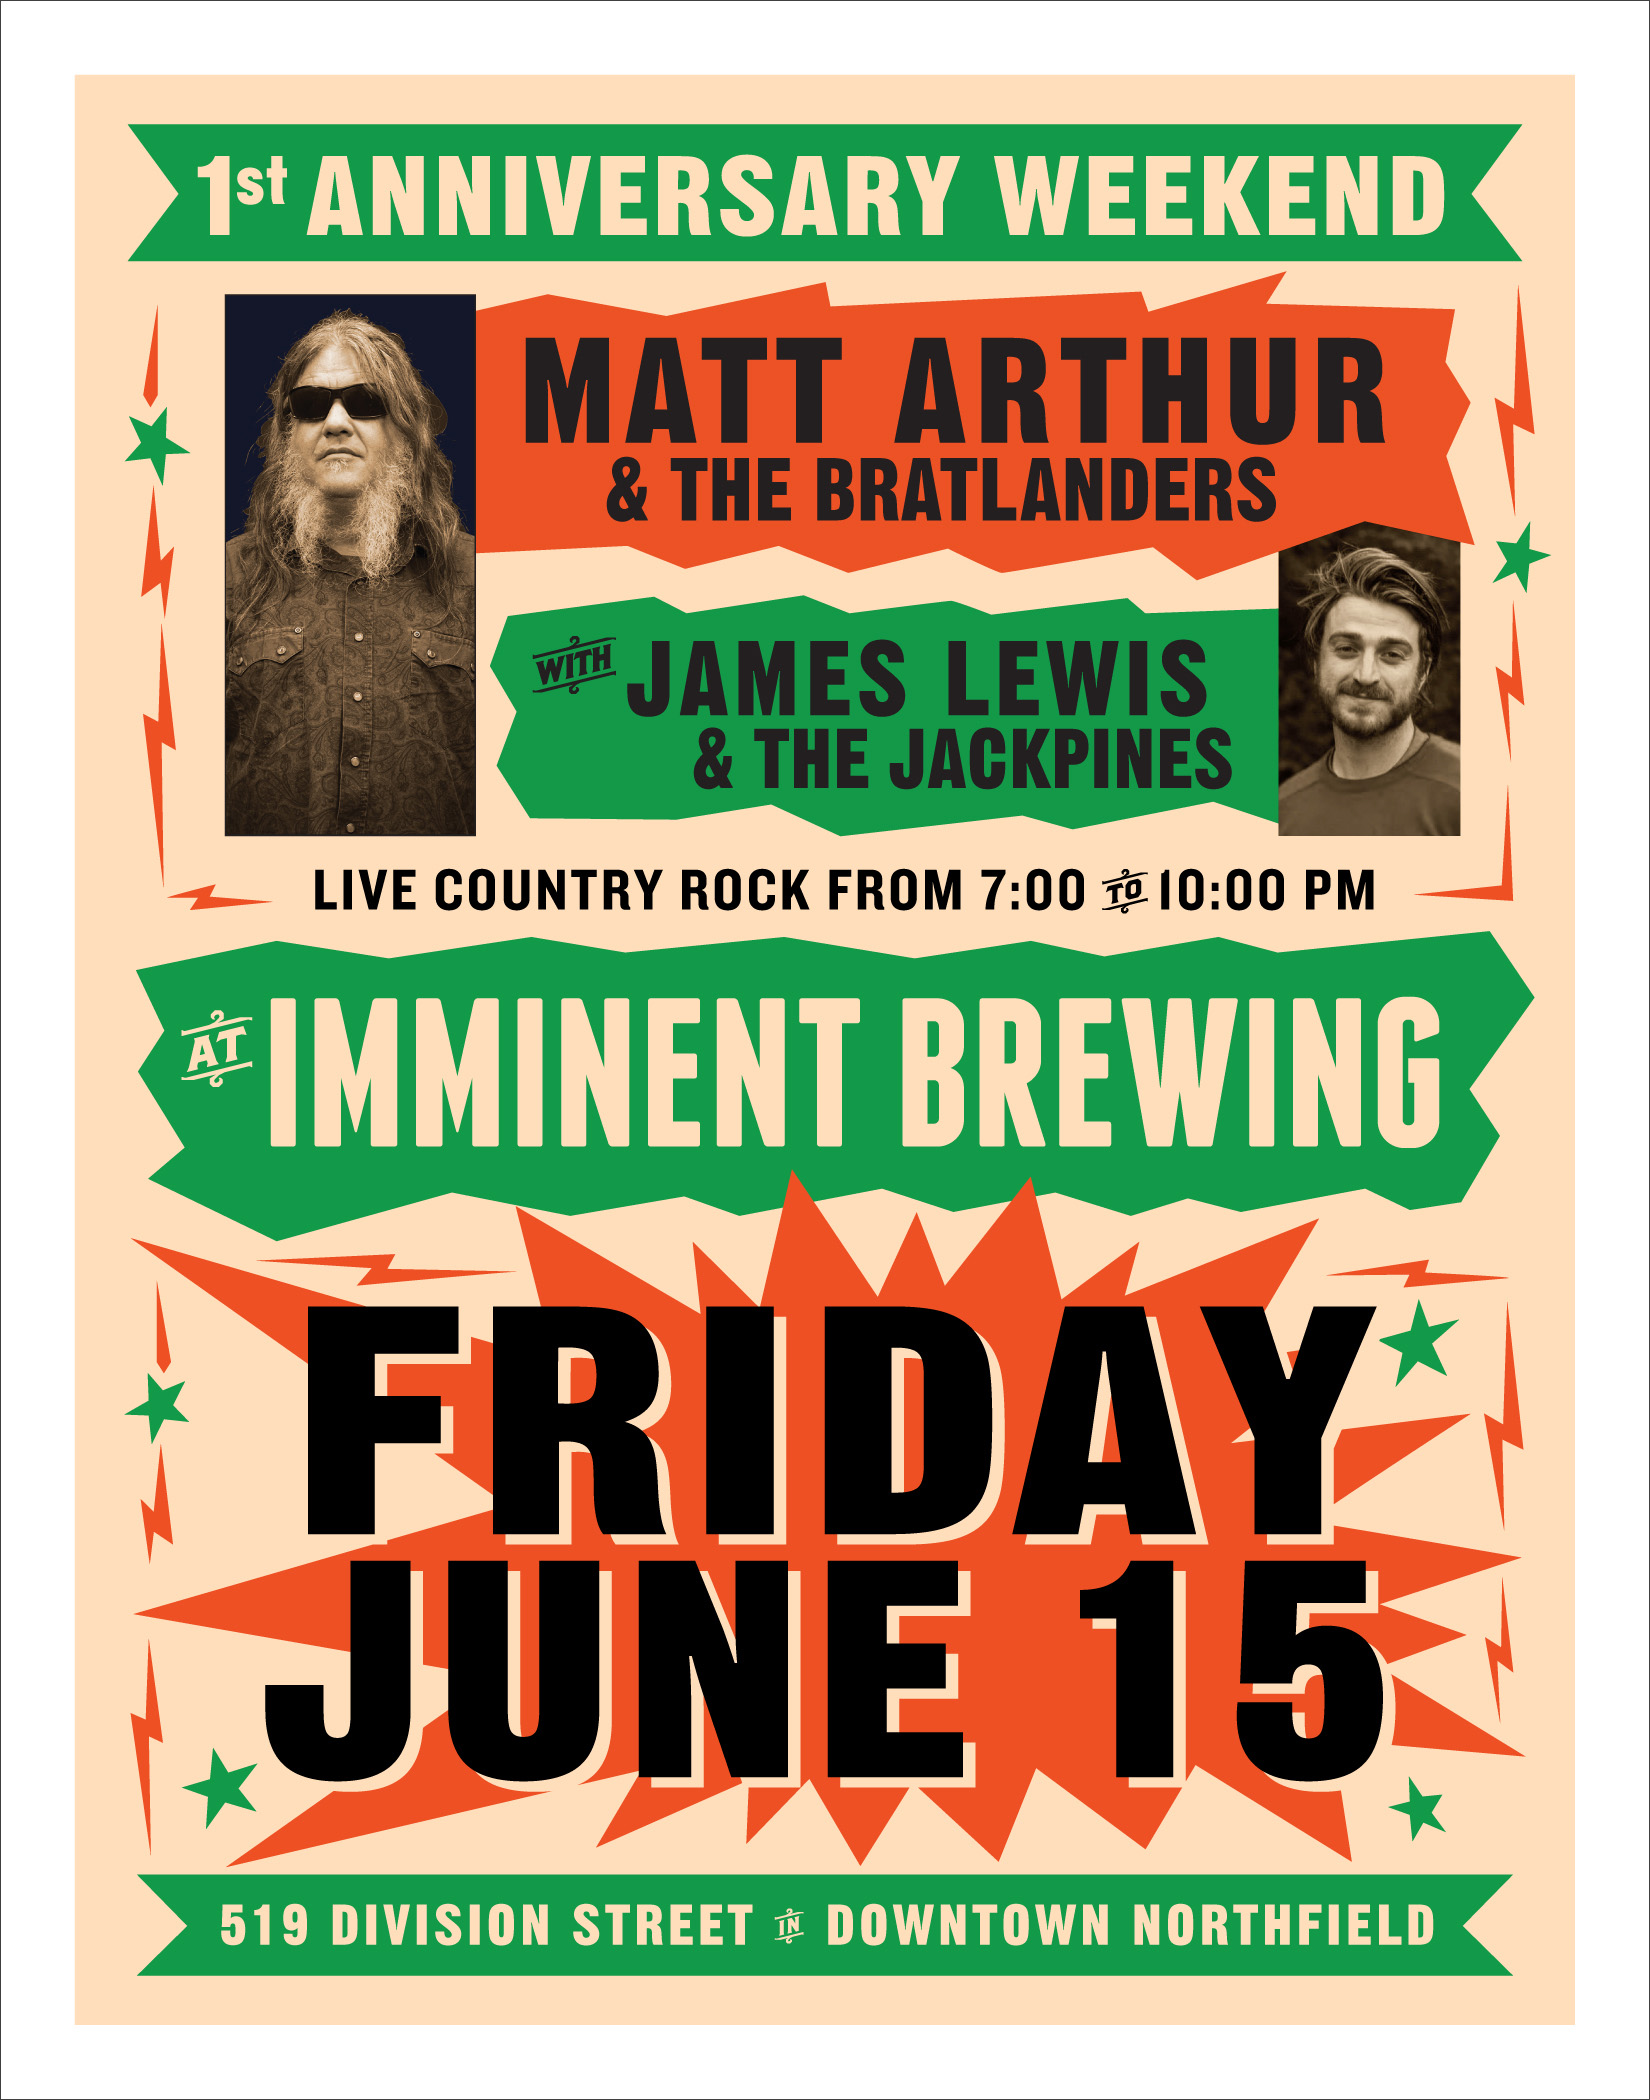 Bratlanders + Jackpines at Imminent Brewing, Friday June 15